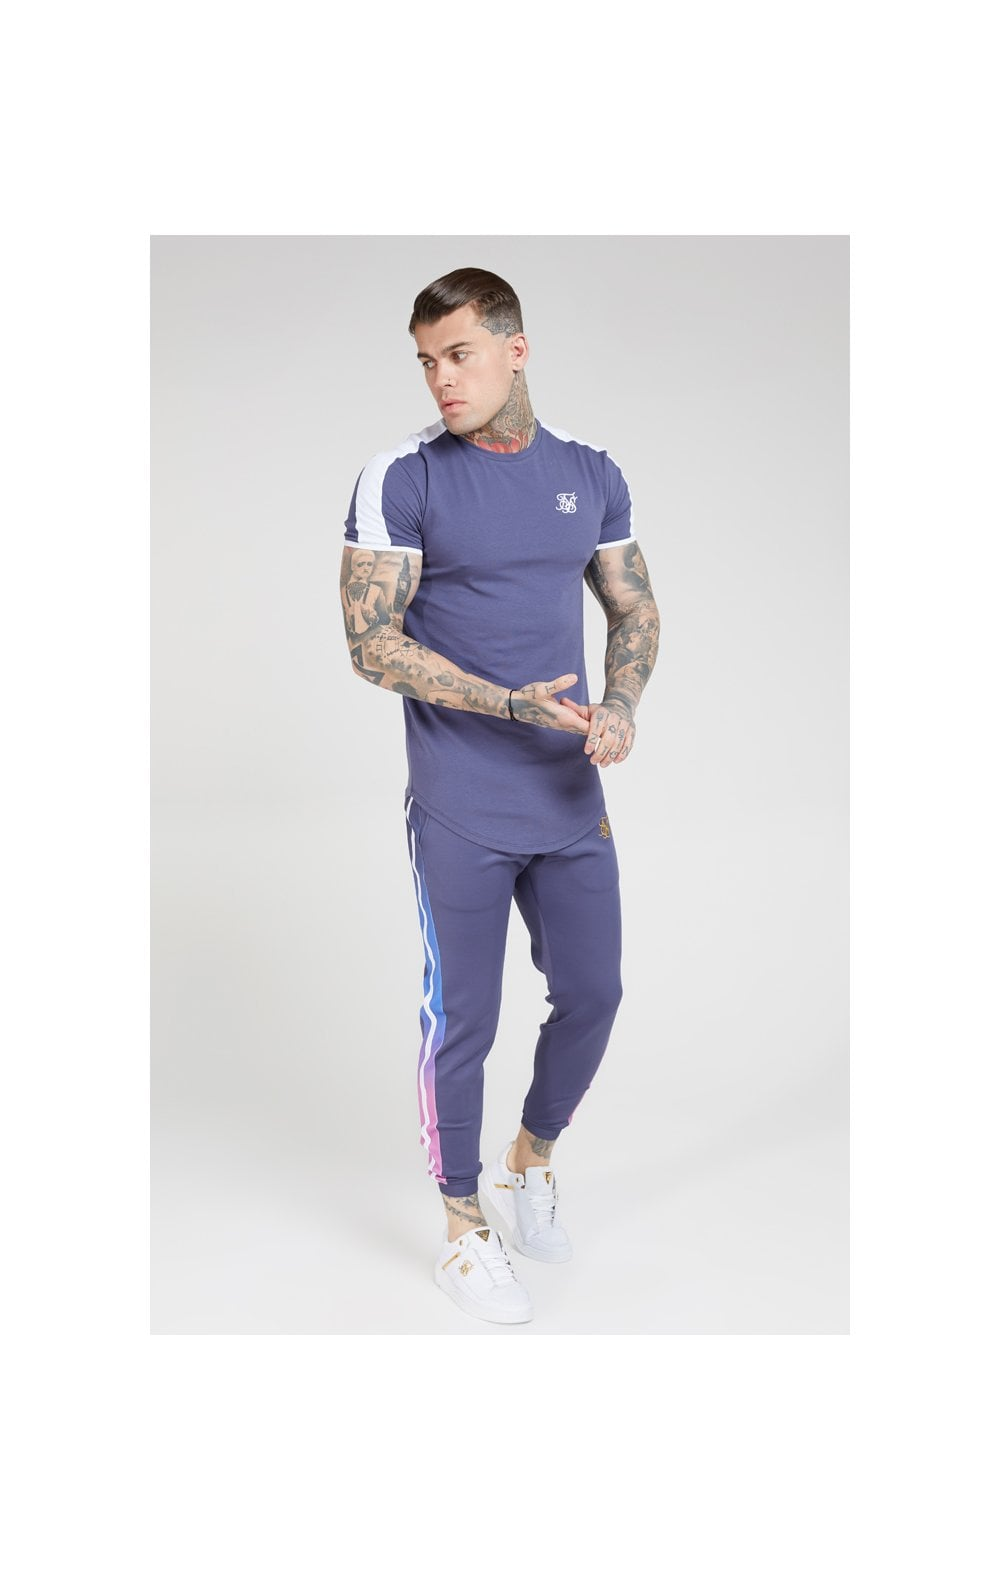 SikSilk Fitted Fade Cuffed Pants – Tri-Neon Fade (4)